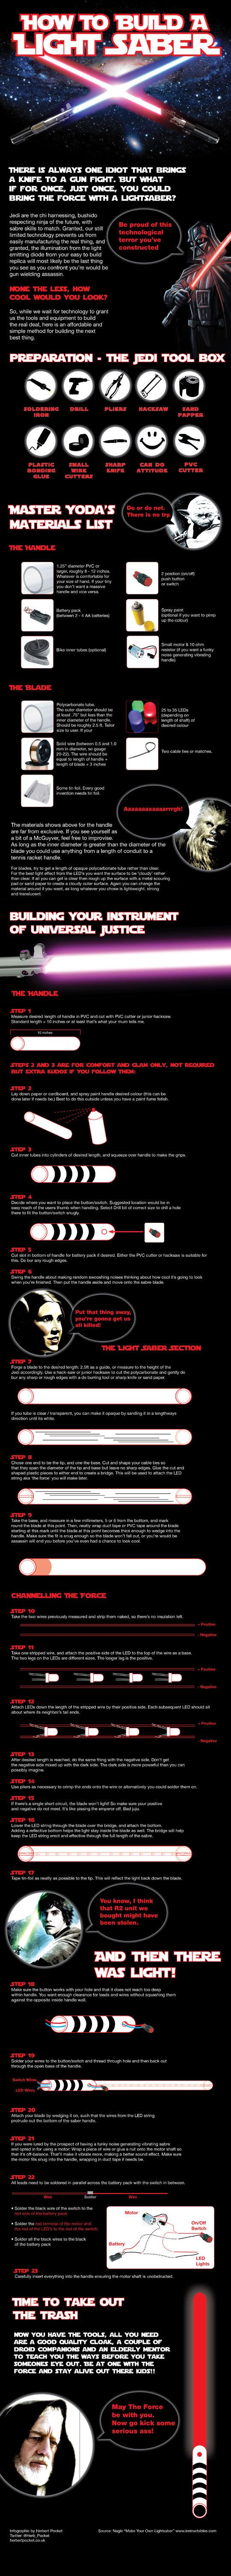 Star Wars: How to Build a Lightsaber